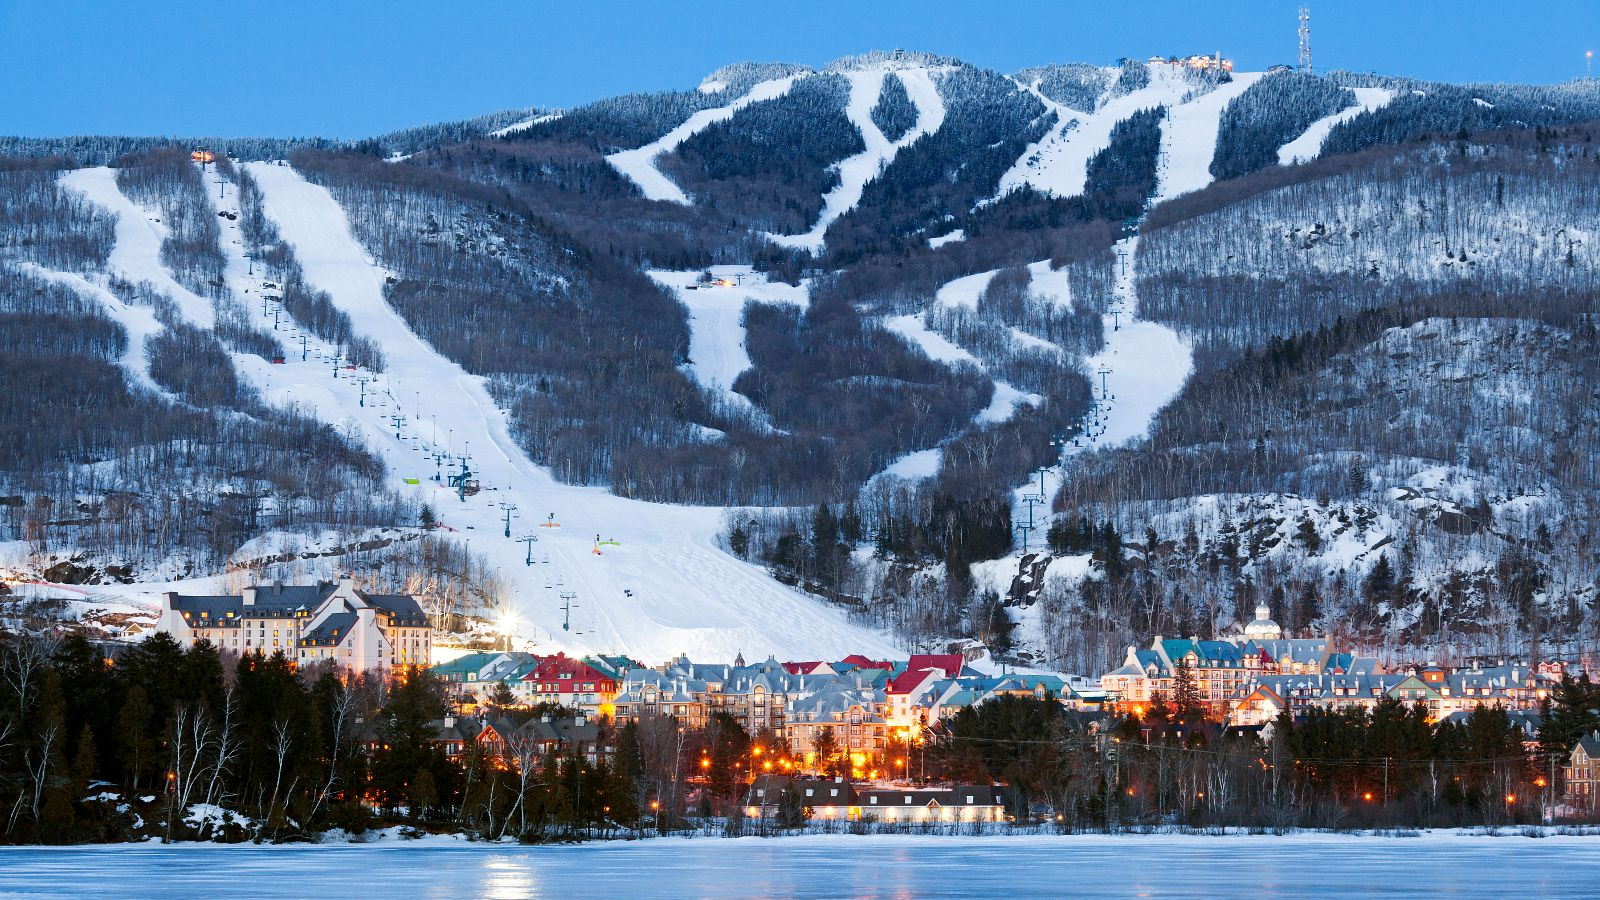 Canada Ski Resorts Map Near Montreal Best Ski Resorts in the Montreal, Quebec Area